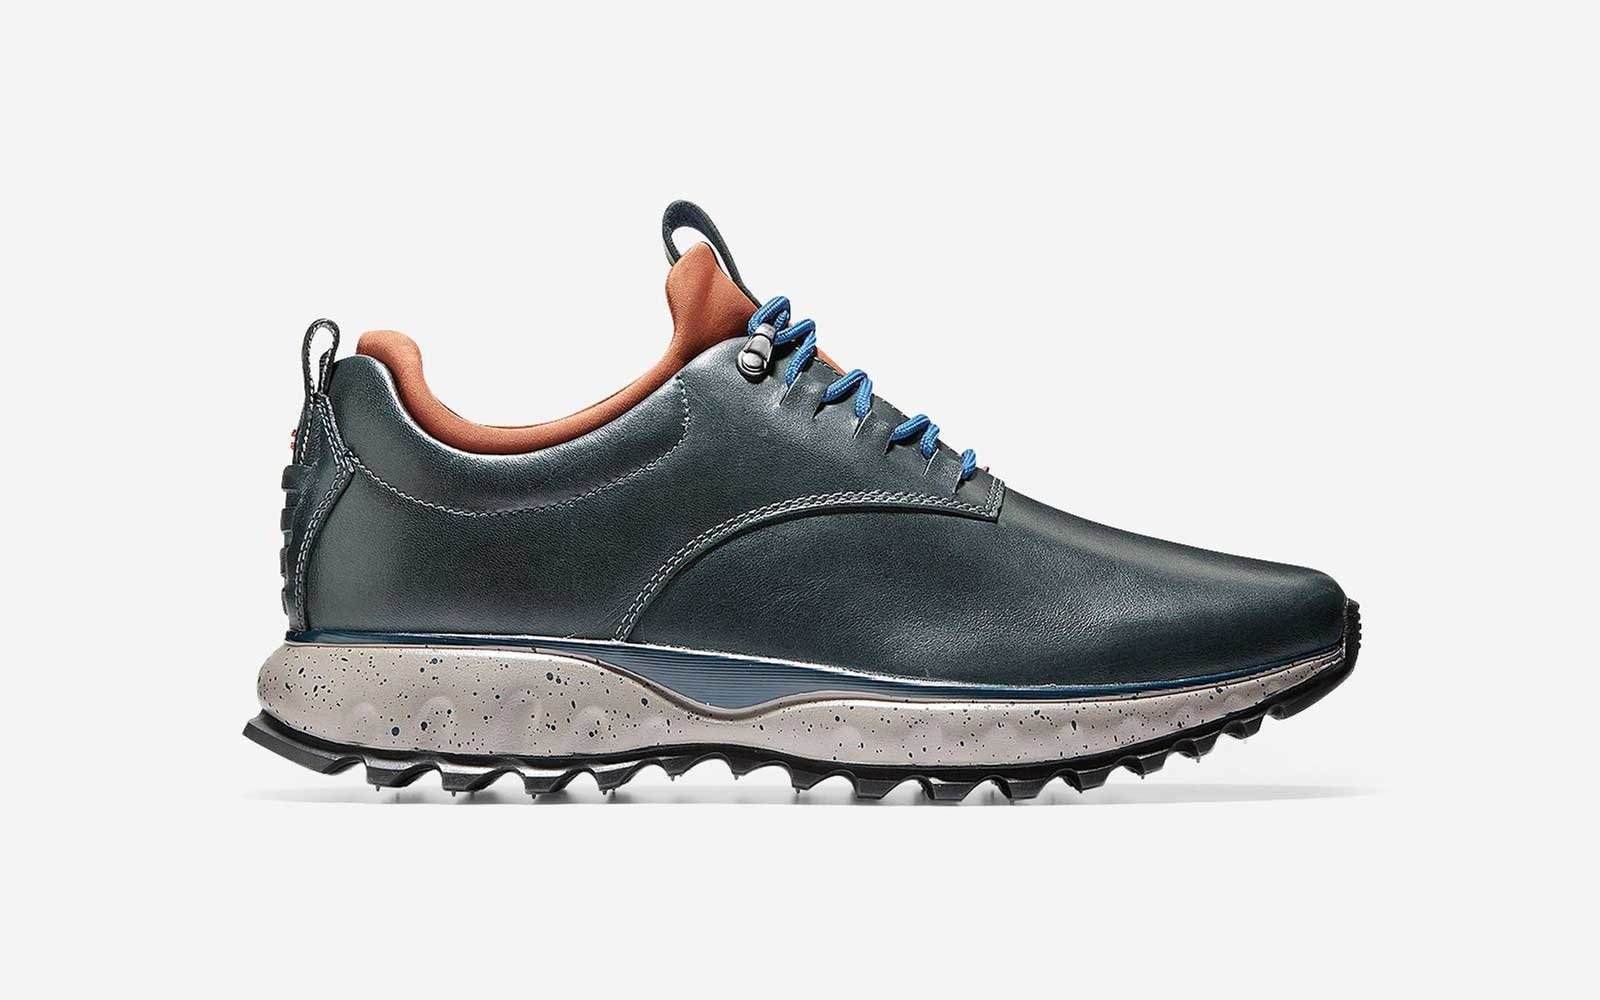 online store f2334 ec959 Cole Haan Men s Zerogrand All-terrain Waterproof Sneaker. Cole Haan  Waterproof Boots